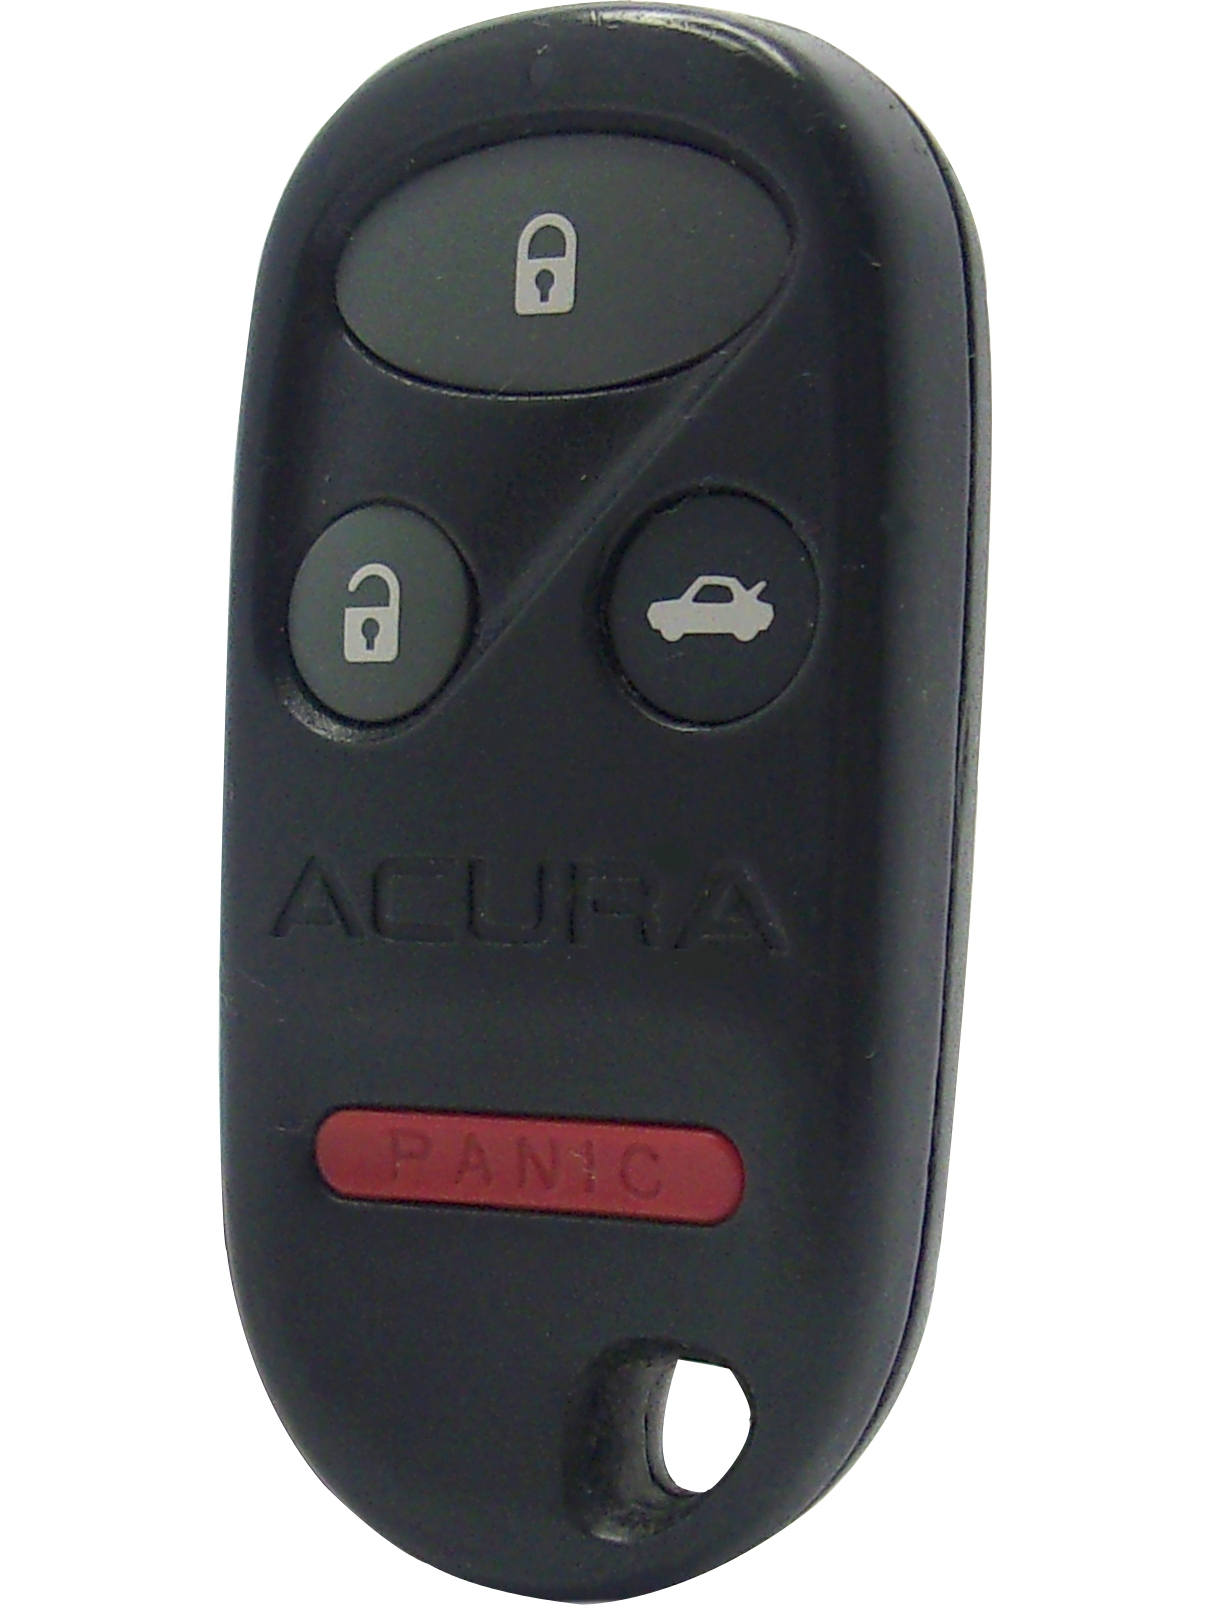 hight resolution of acura keyless entry remote 4 button